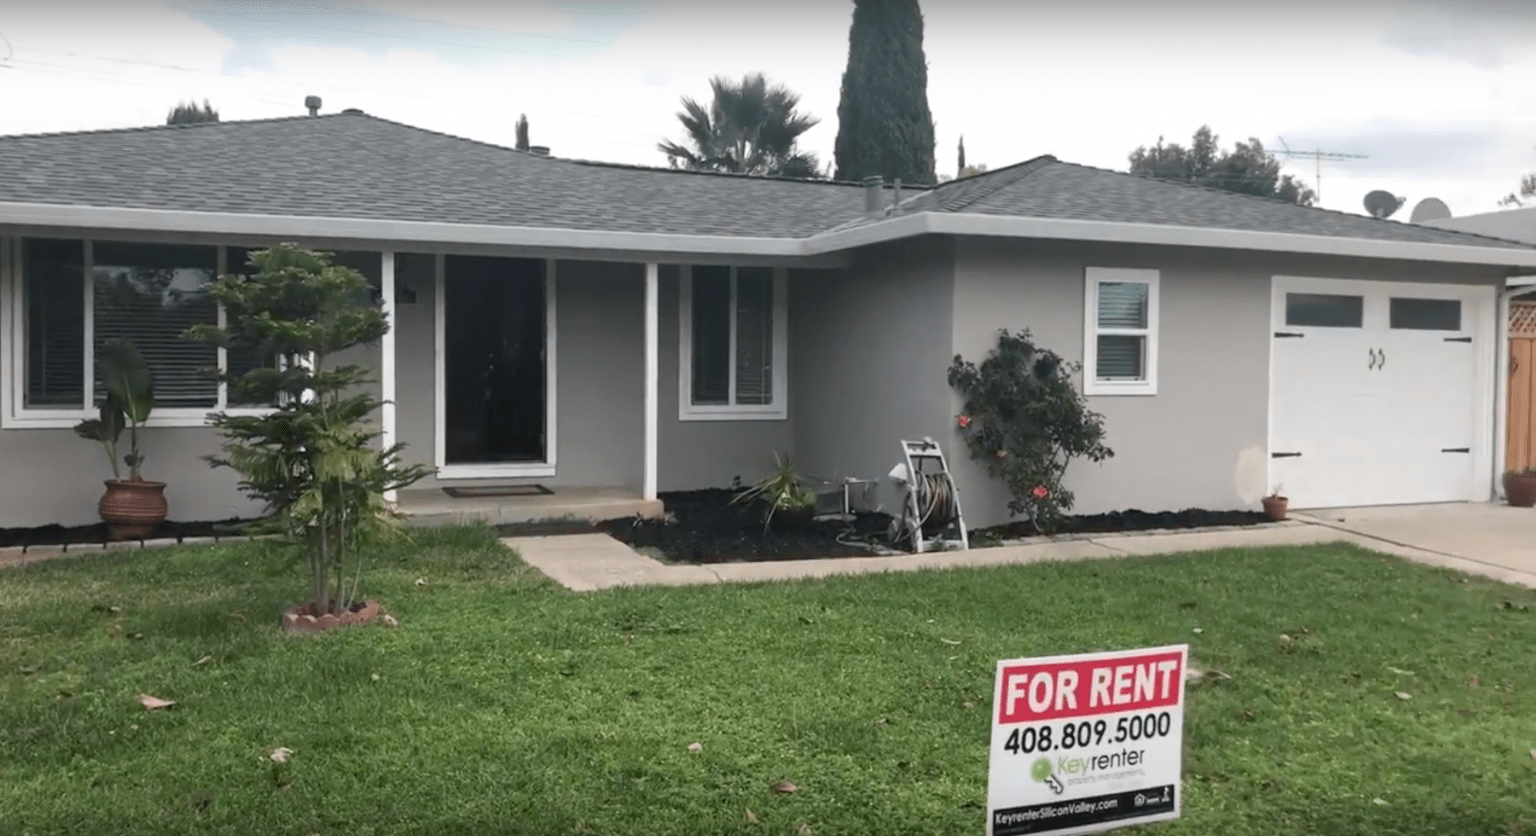 California bill targets vacant properties, would force fines or seizure of homes if company can't find renters